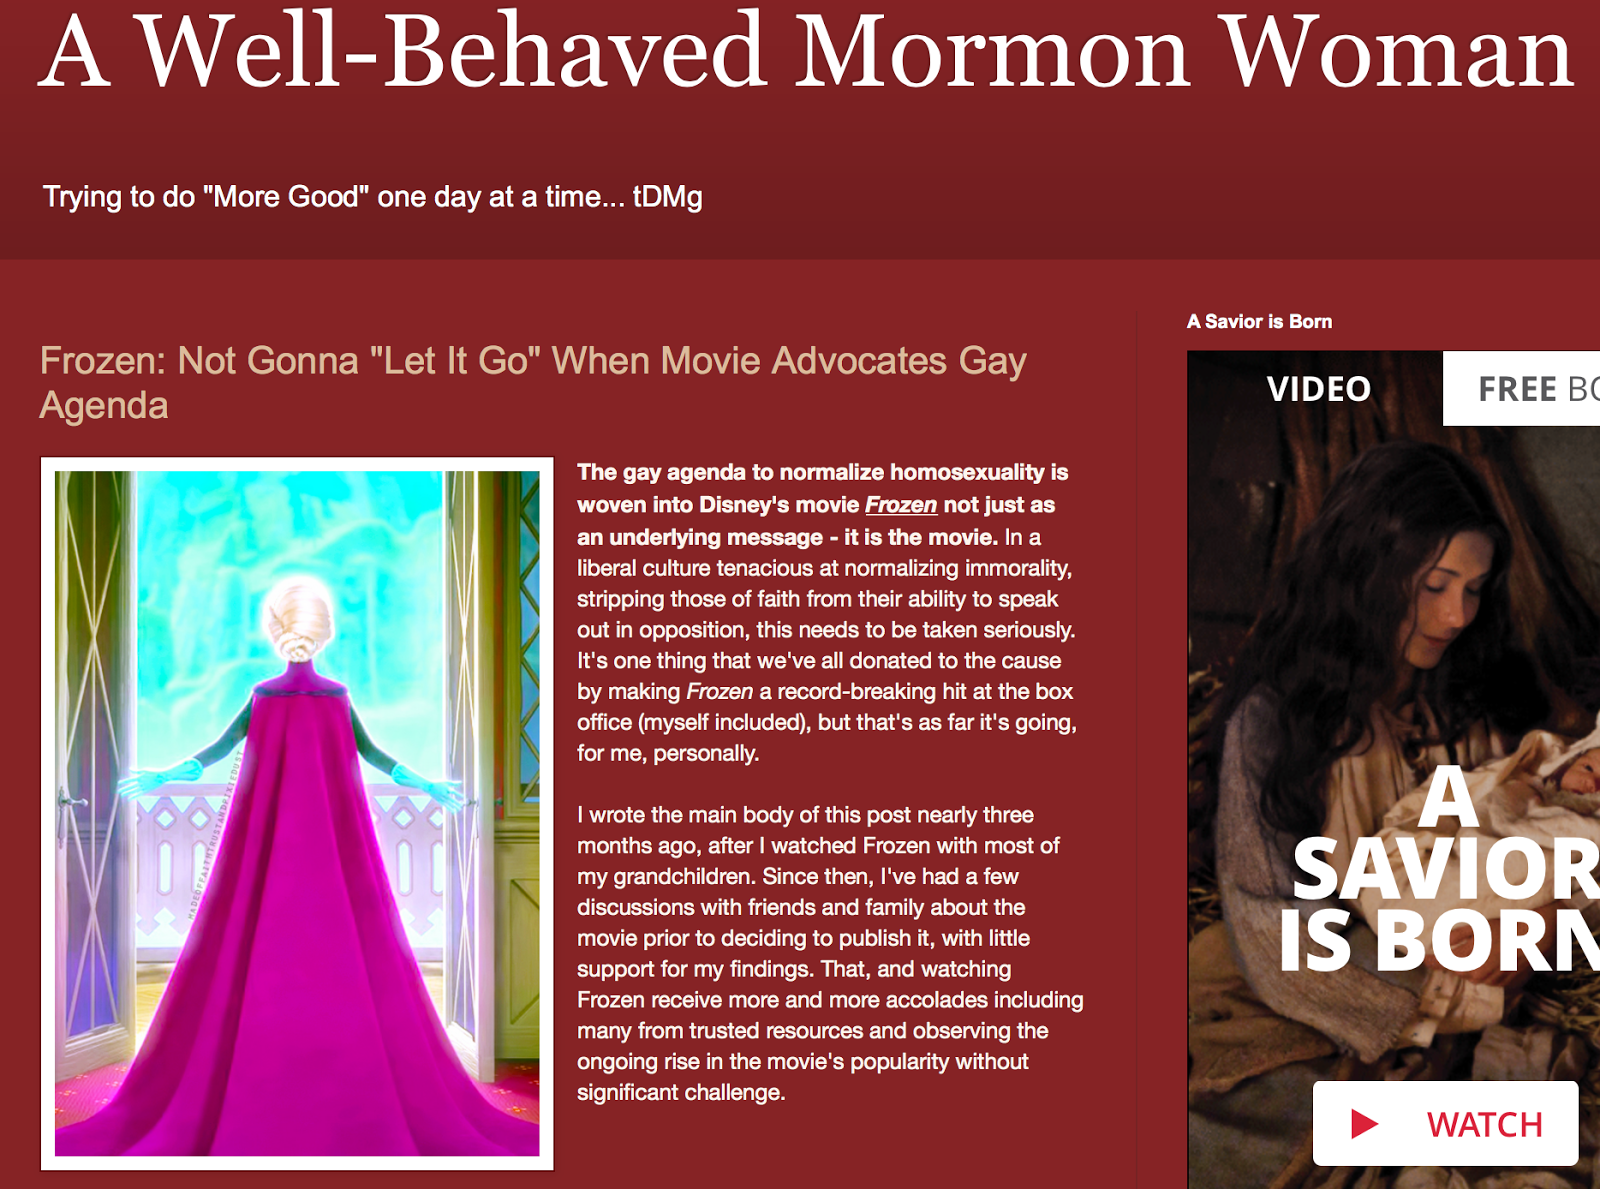 A mormon blogger flips out about Frozen and the Gay Agenda